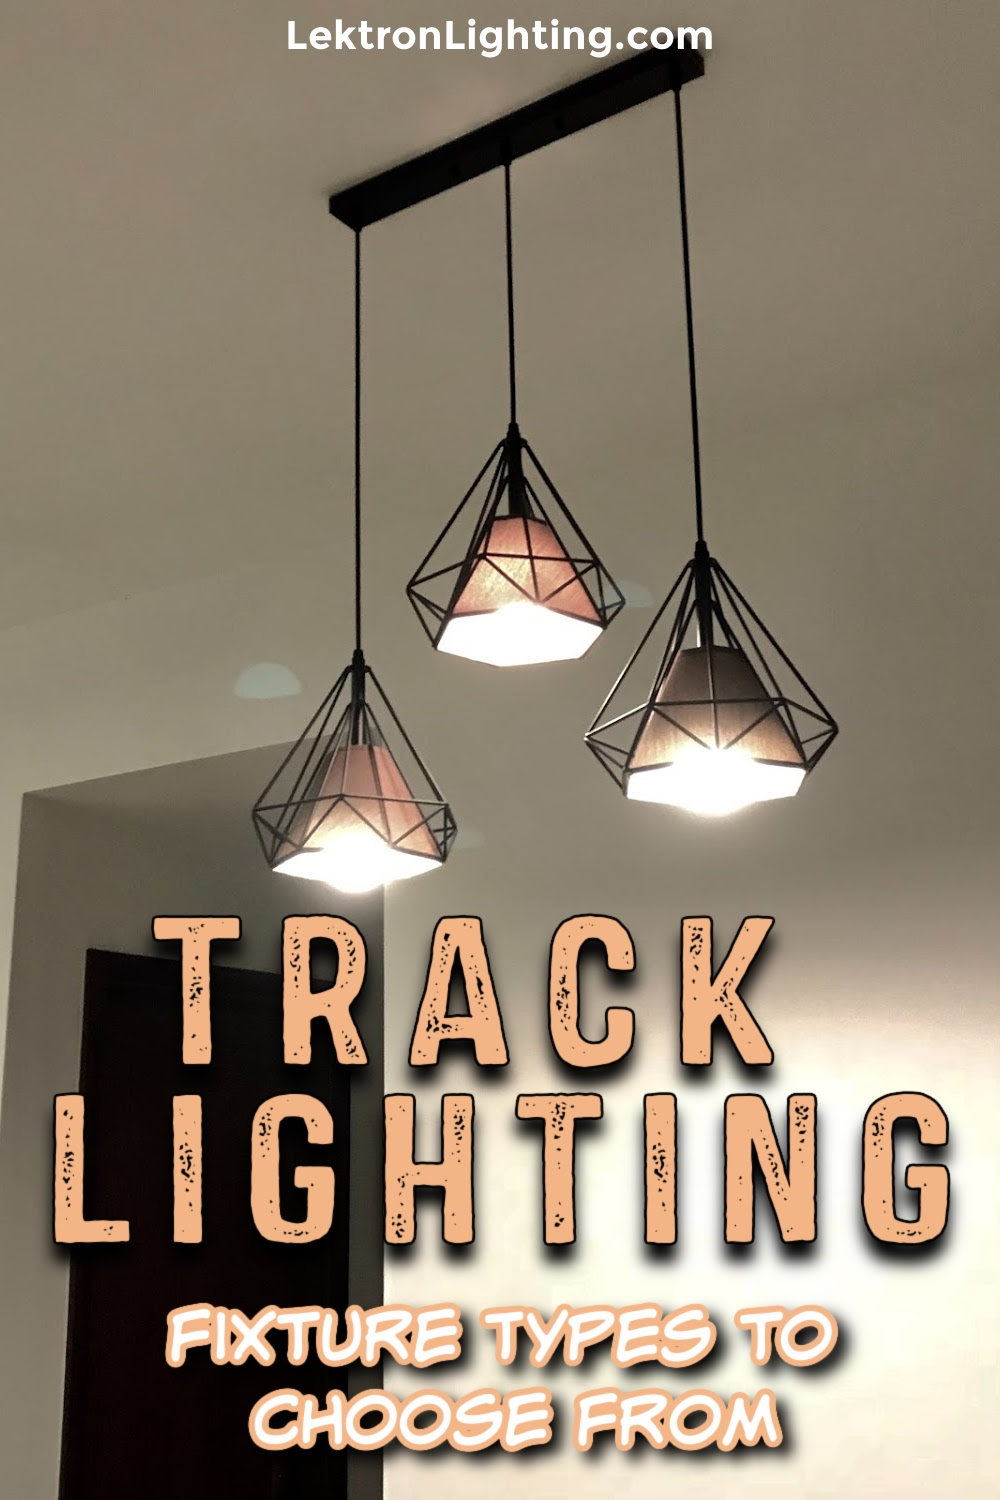 You can utilize the different track lighting fixture types to create the perfect lighting scape in your store, at your warehouse, or in your office.